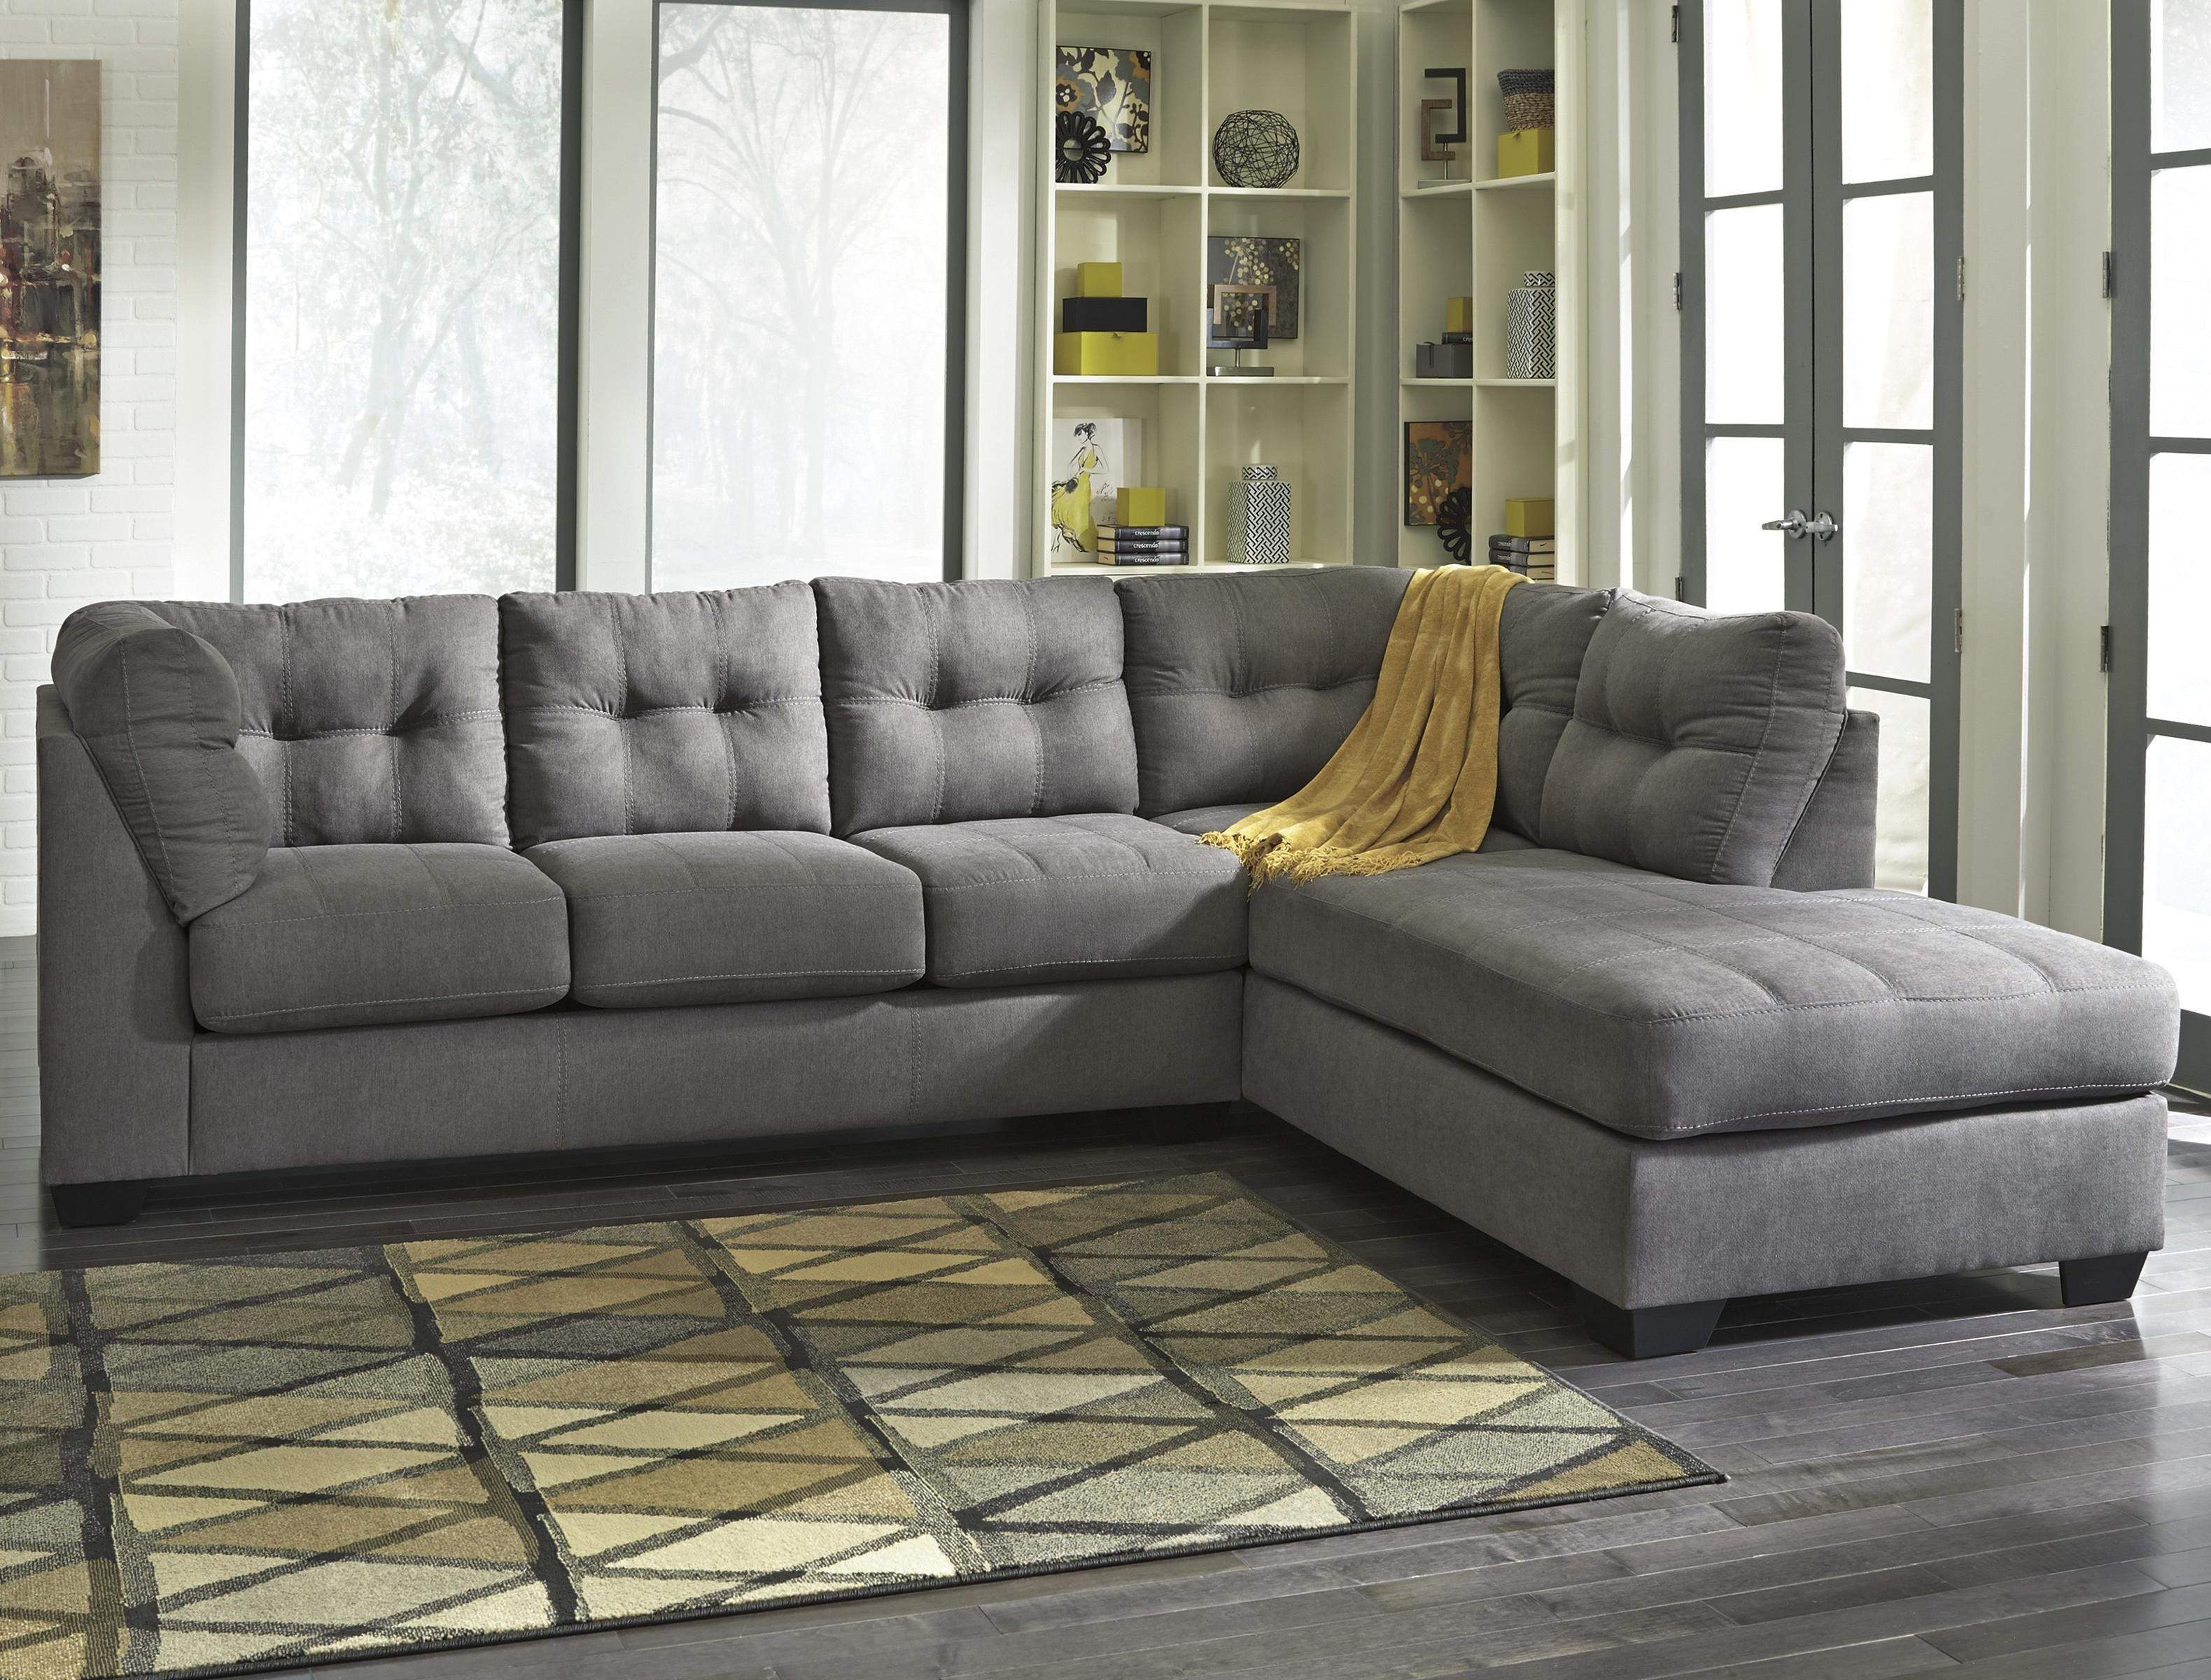 quality excellent photo leather designs new sofa high furnitures also sectional tosh furniture with inspirational smart